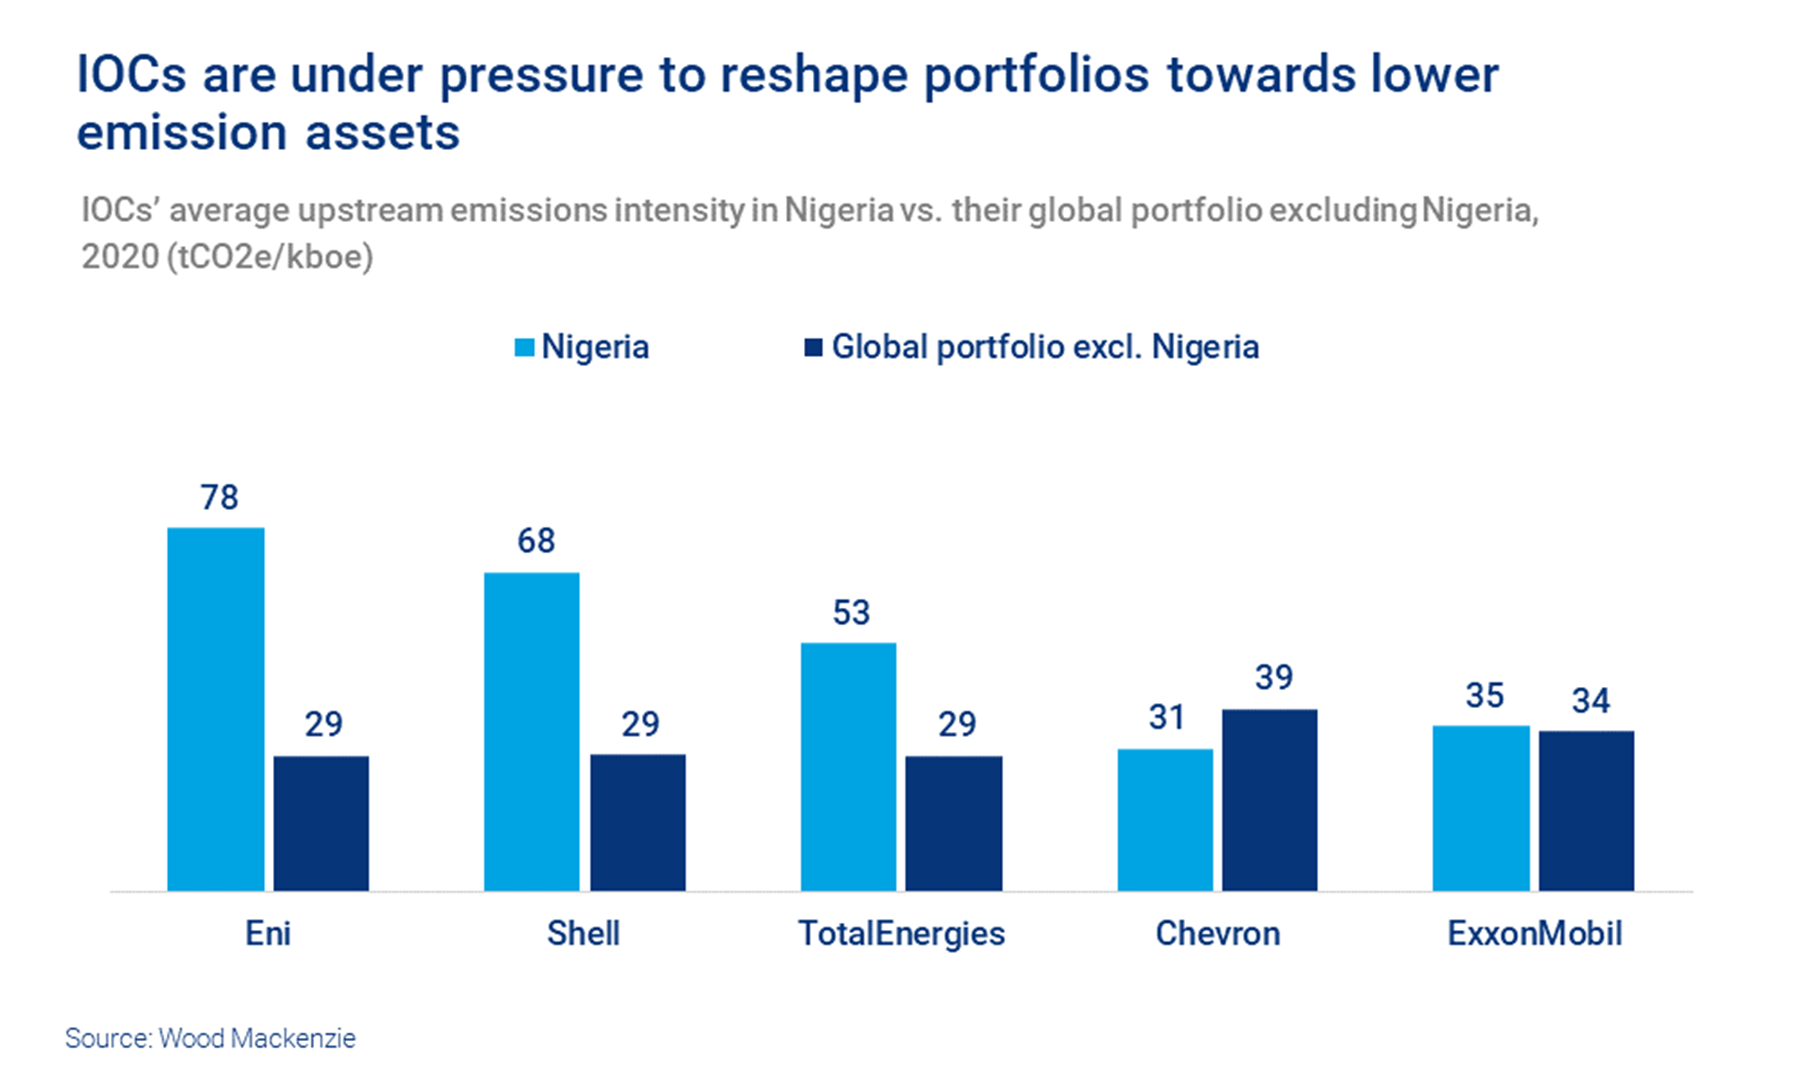 Chart shows IOCs' average upstream emissions intensity in Nigeria